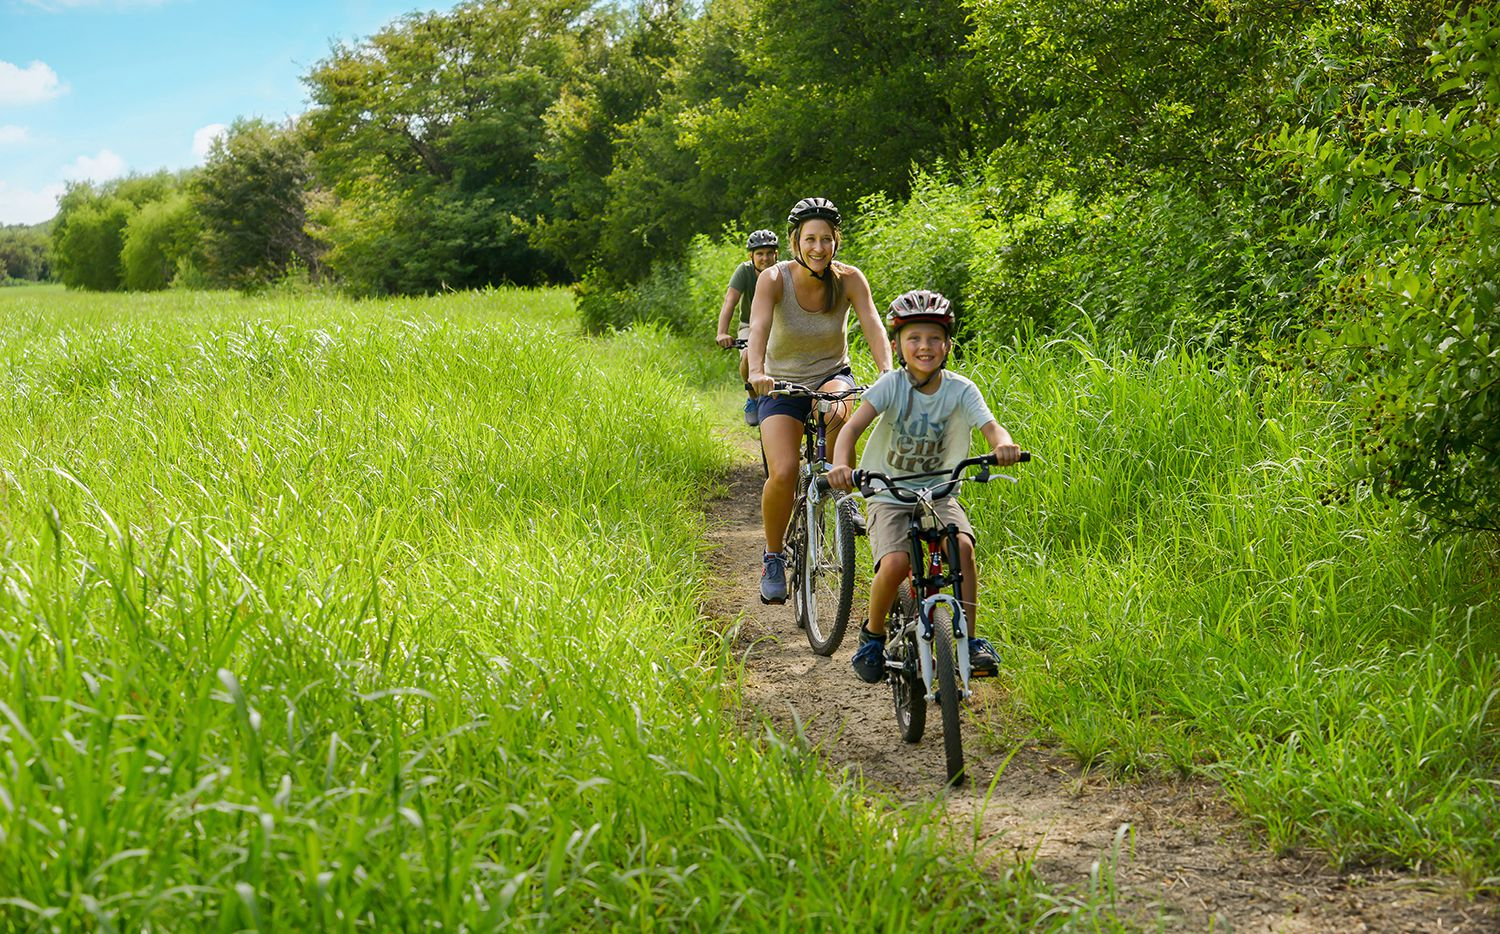 Windsong Ranch offers an array of outdoor amenities for residents of all ages.